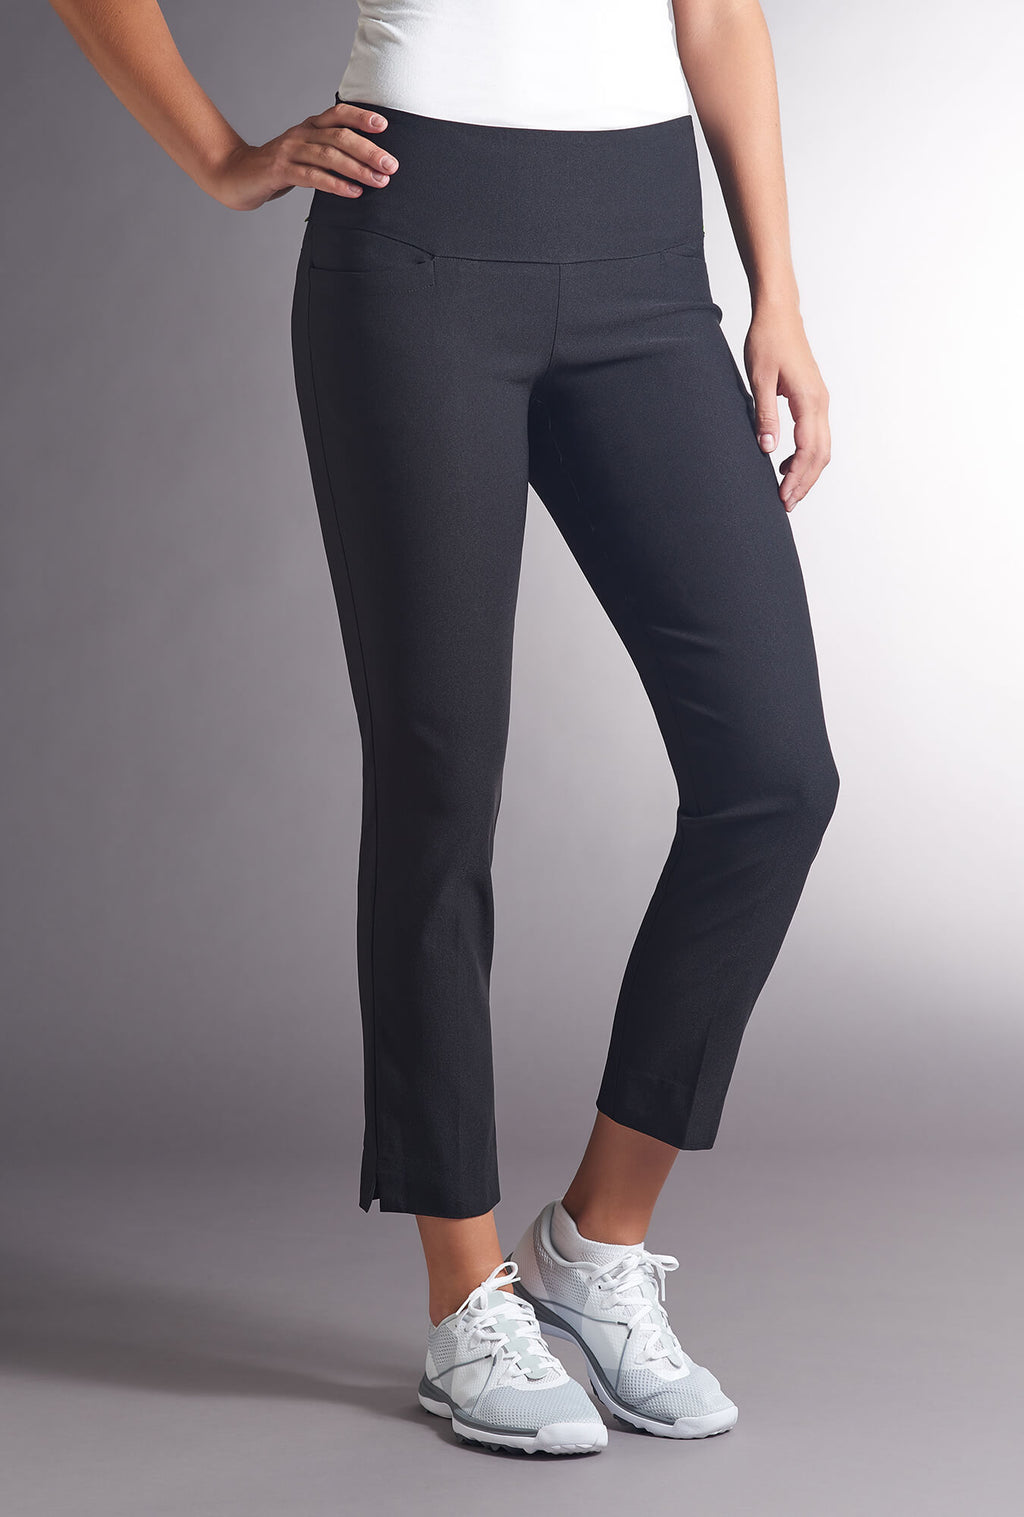 Swing Control Black Masters Ankle Pant